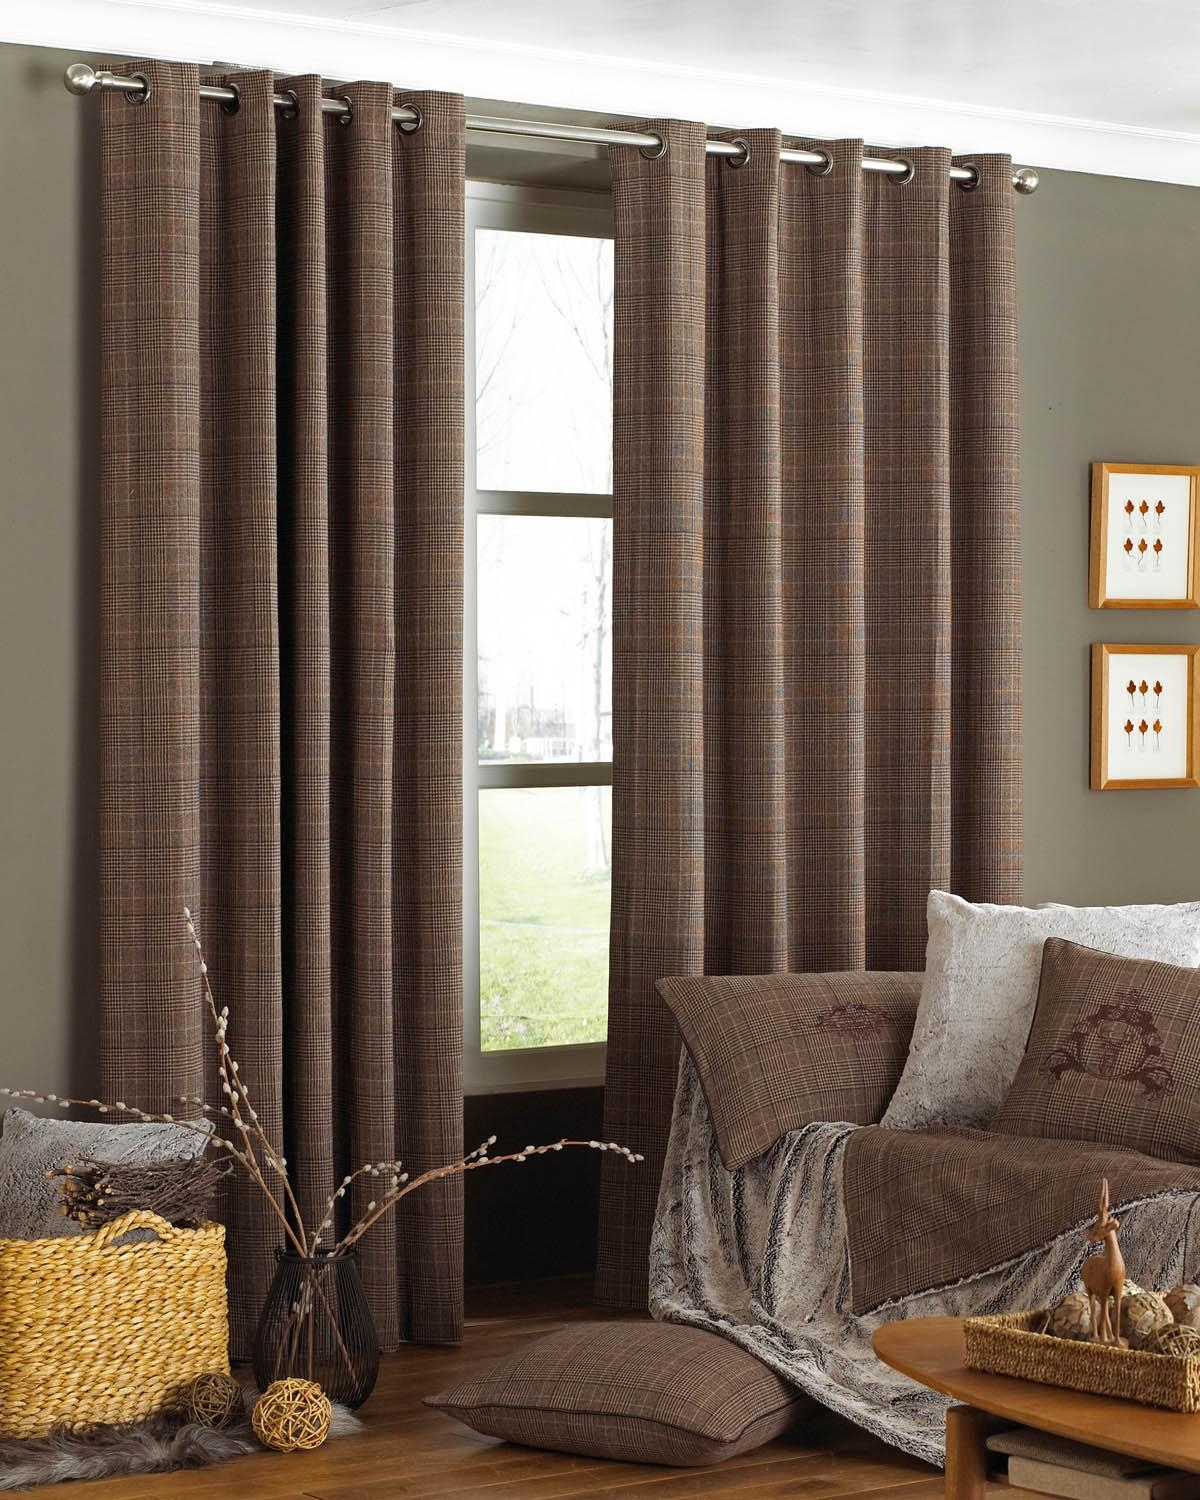 Courcheval Eyelet Curtains Brown Free Uk Delivery Terrys Fabrics With Regard To Brown Eyelet Curtains (View 16 of 25)